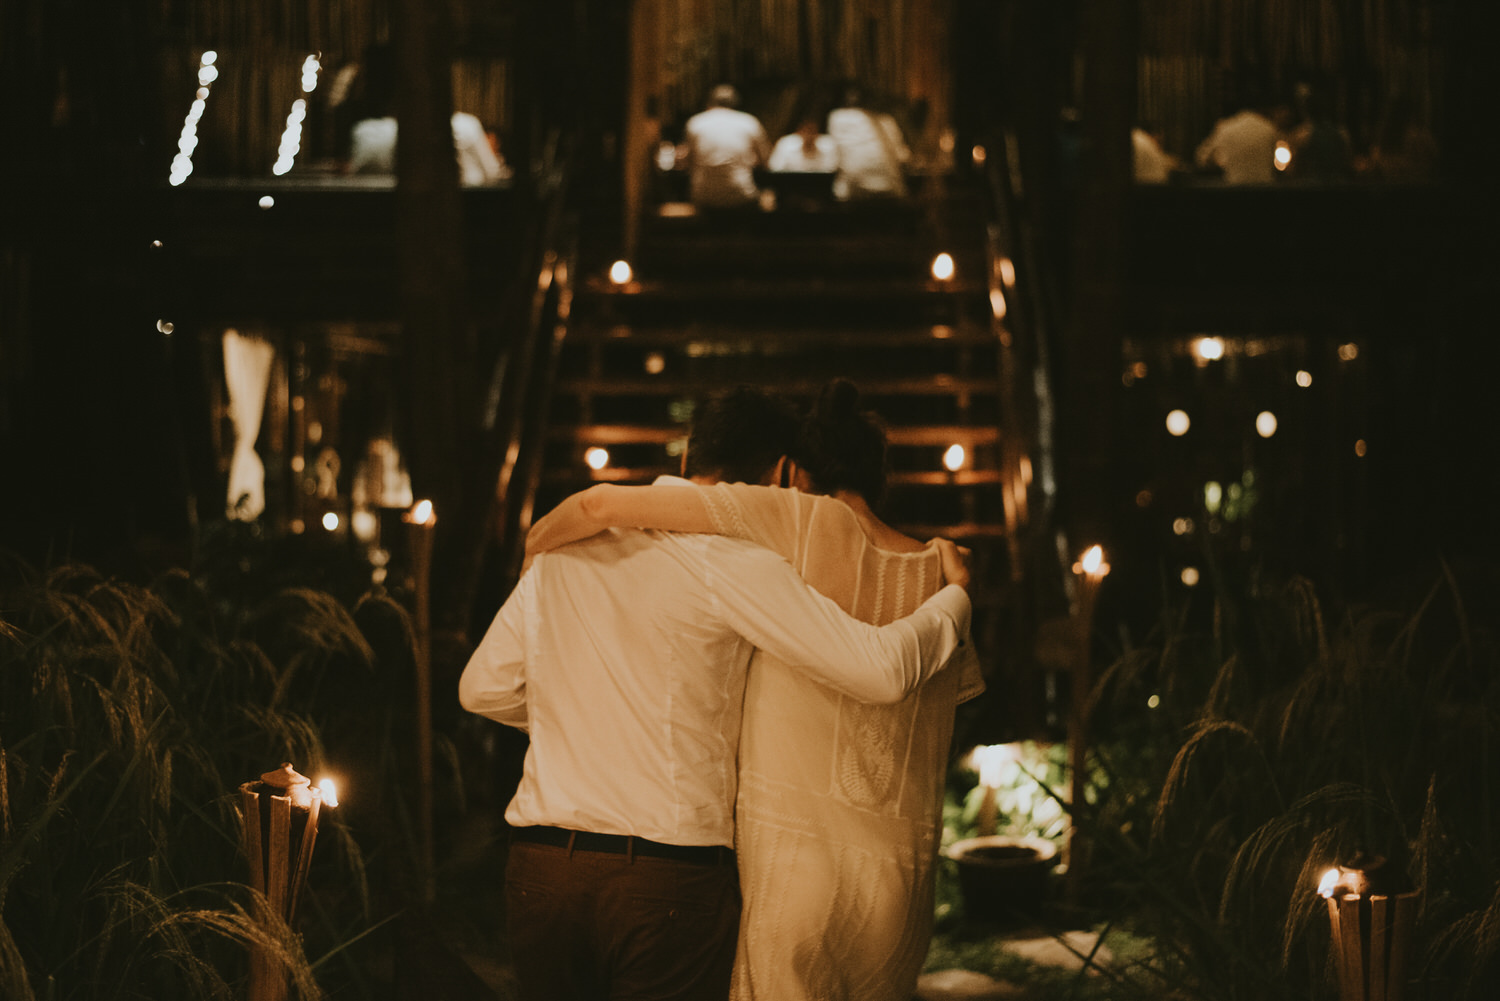 bali-wedding-ubud-wedding-wedding-destination-diktatphotography-kadek-artayasa-elaine-and-glenn-145